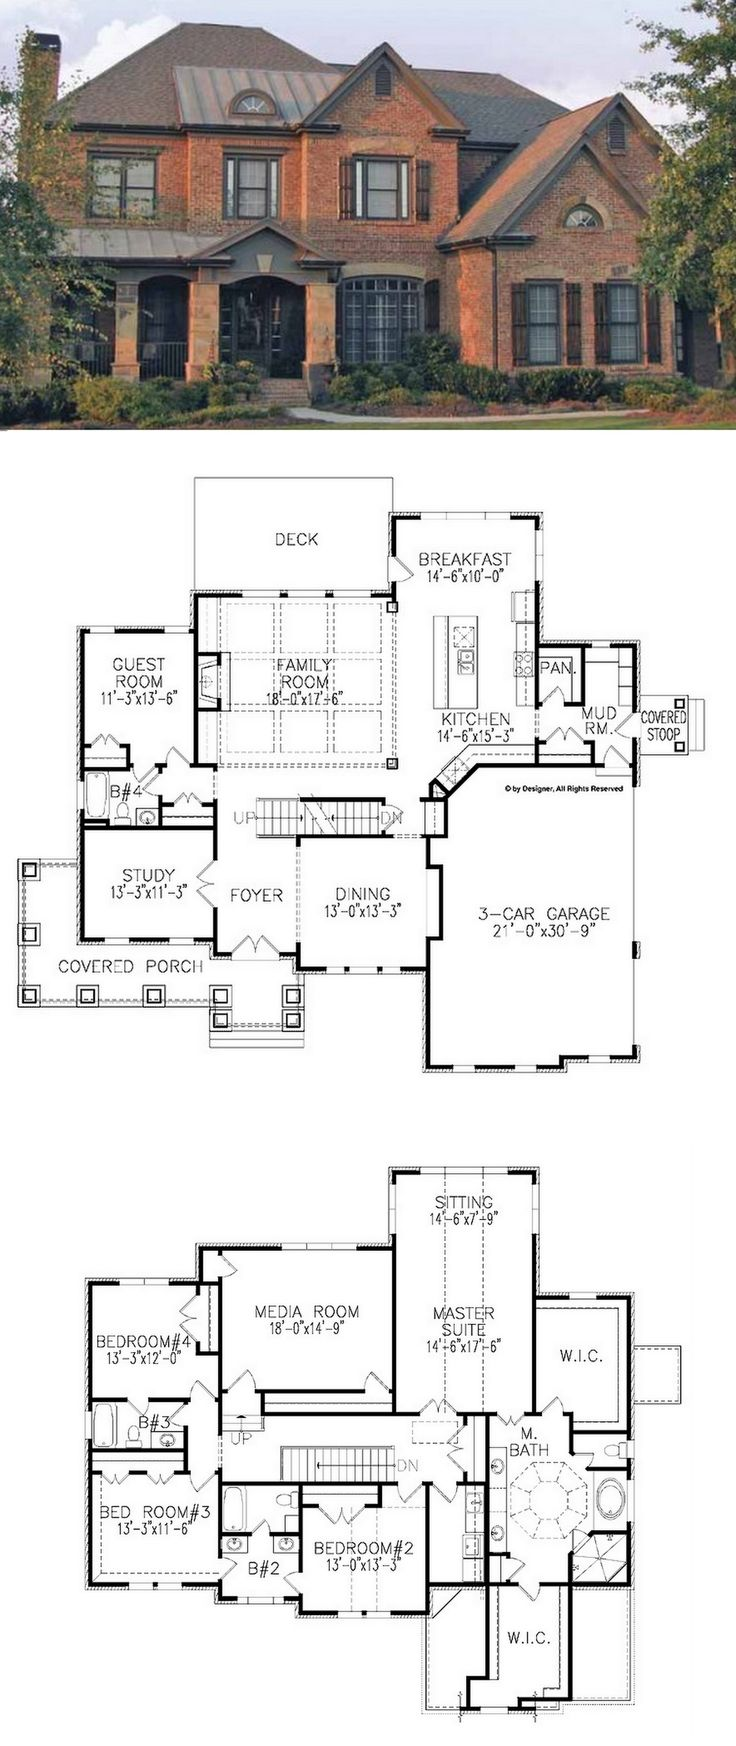 Best 25+ Bedroom Addition Plans Ideas On Pinterest | Master Suite Addition,  Master Bedroom Plans And Home Addition Plans Part 70